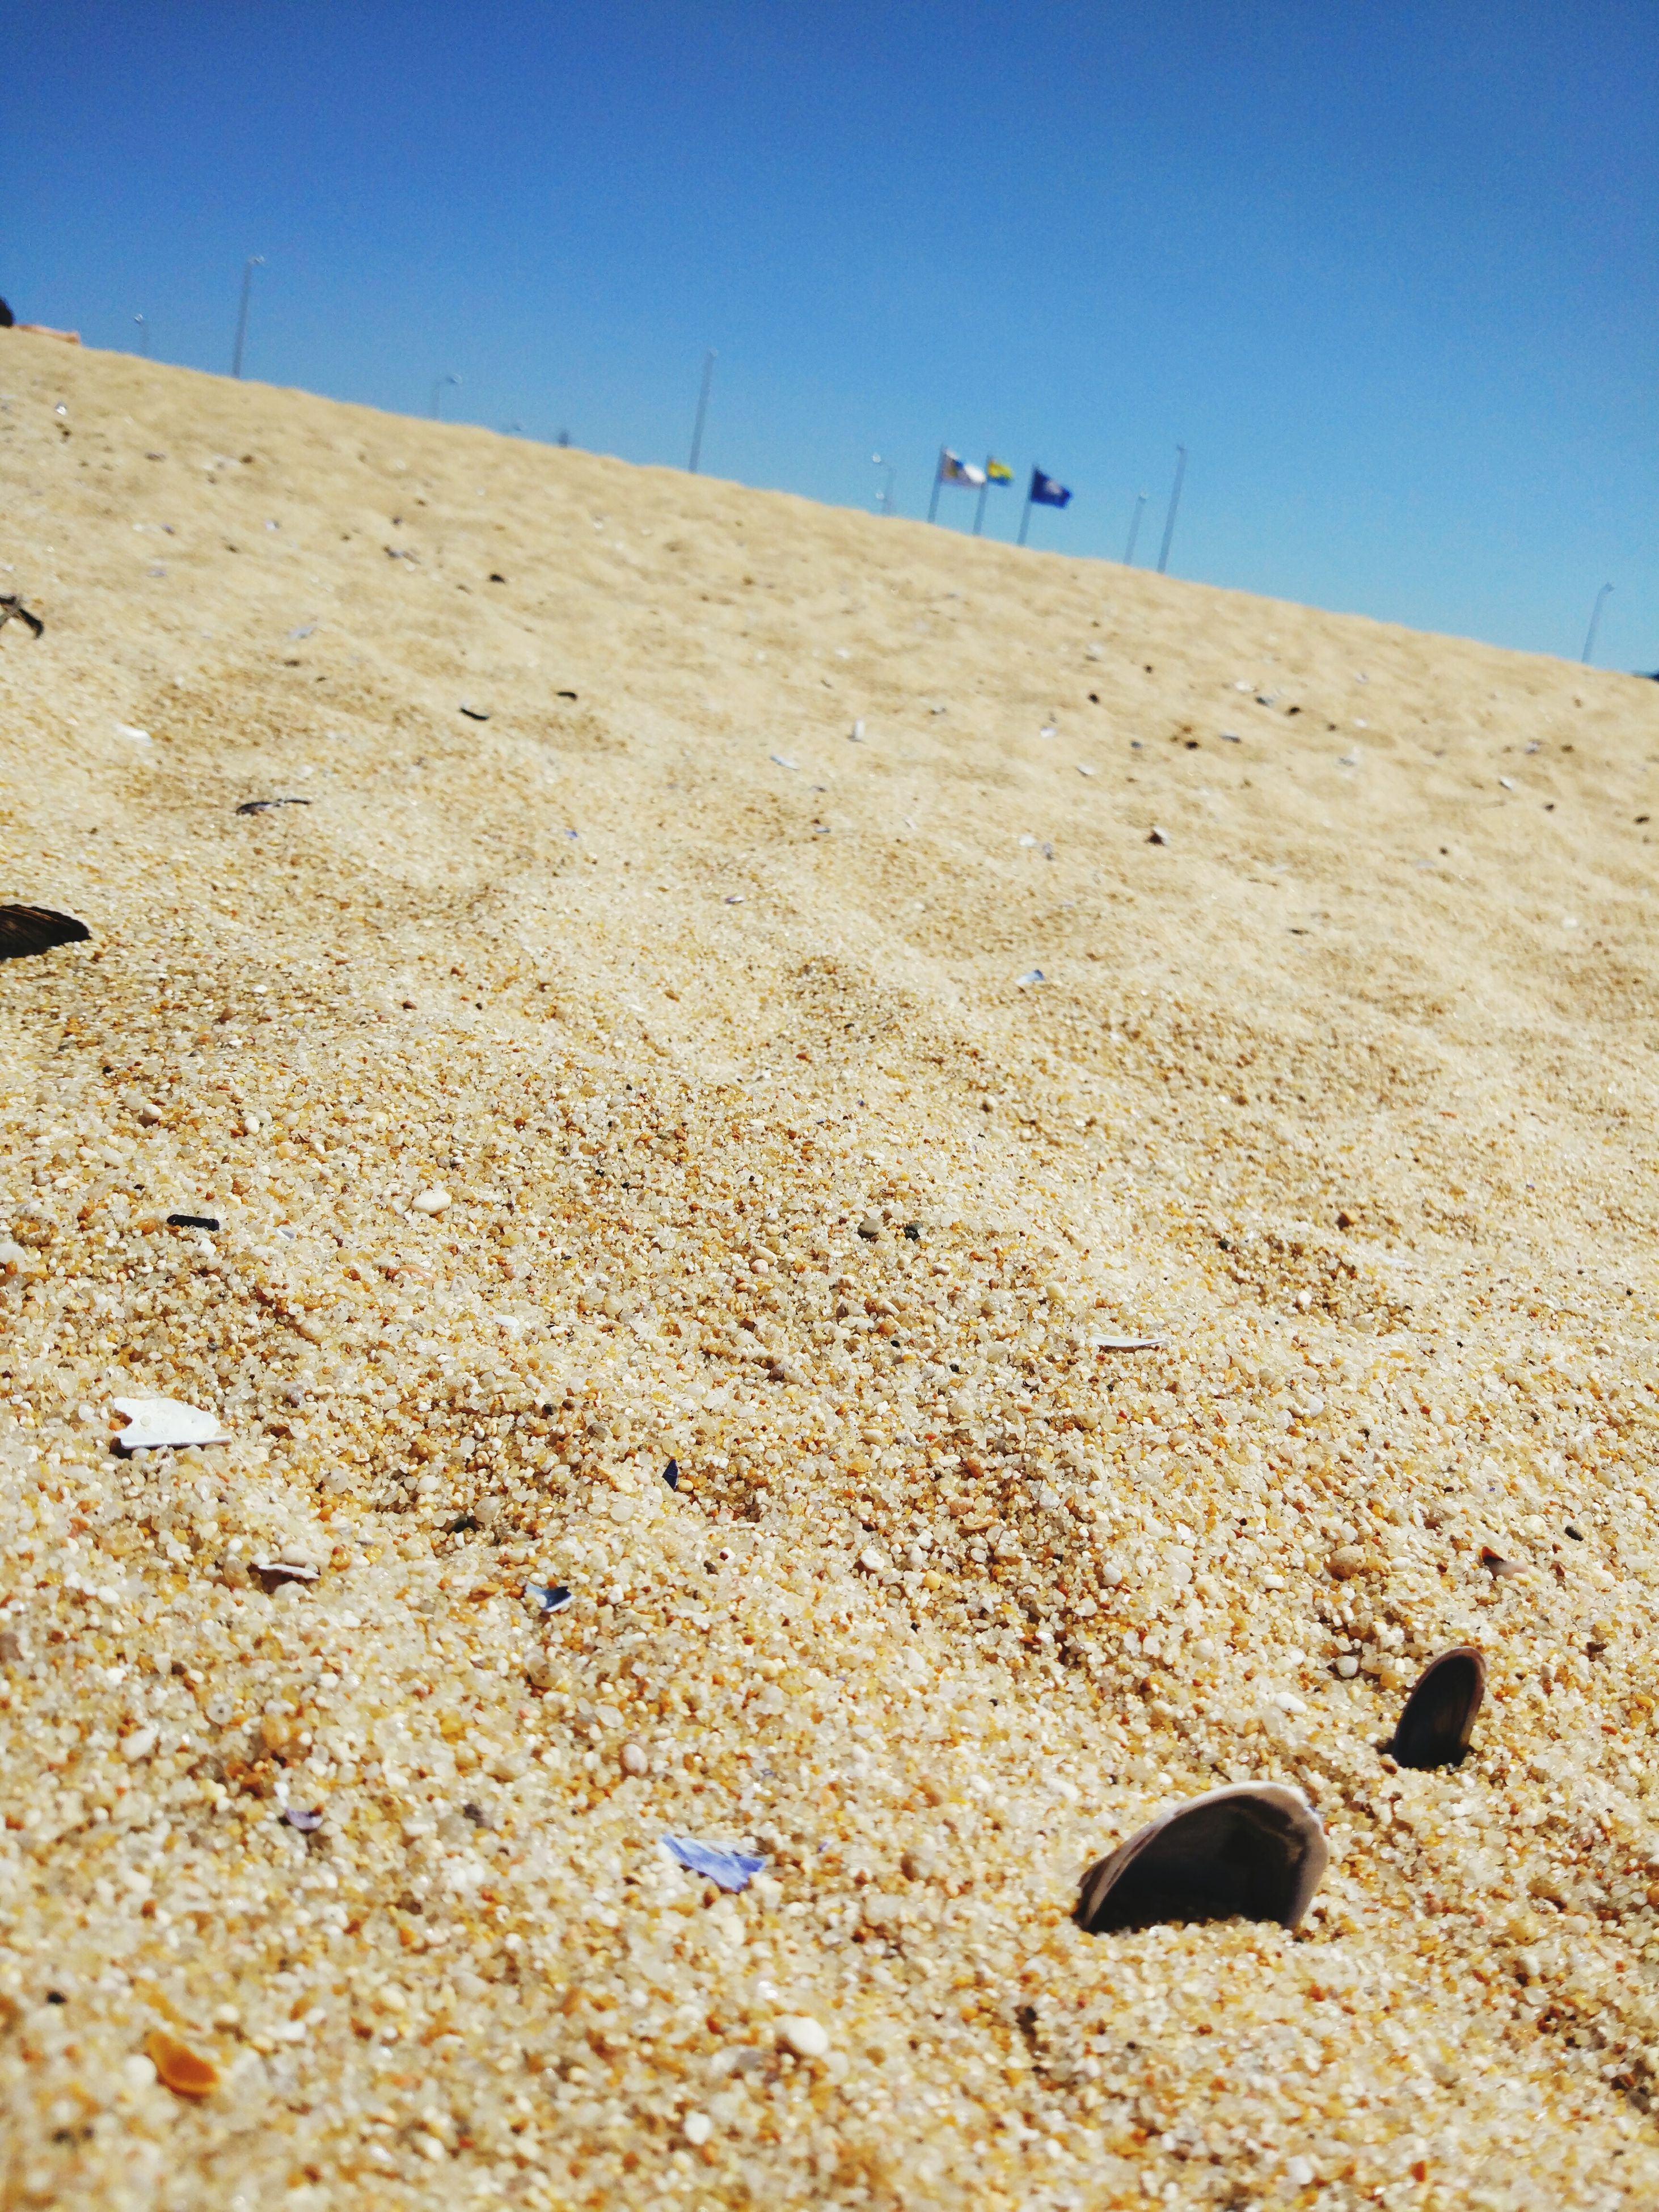 sand, beach, shore, day, outdoors, nature, no people, clear sky, sand dune, beauty in nature, close-up, sky